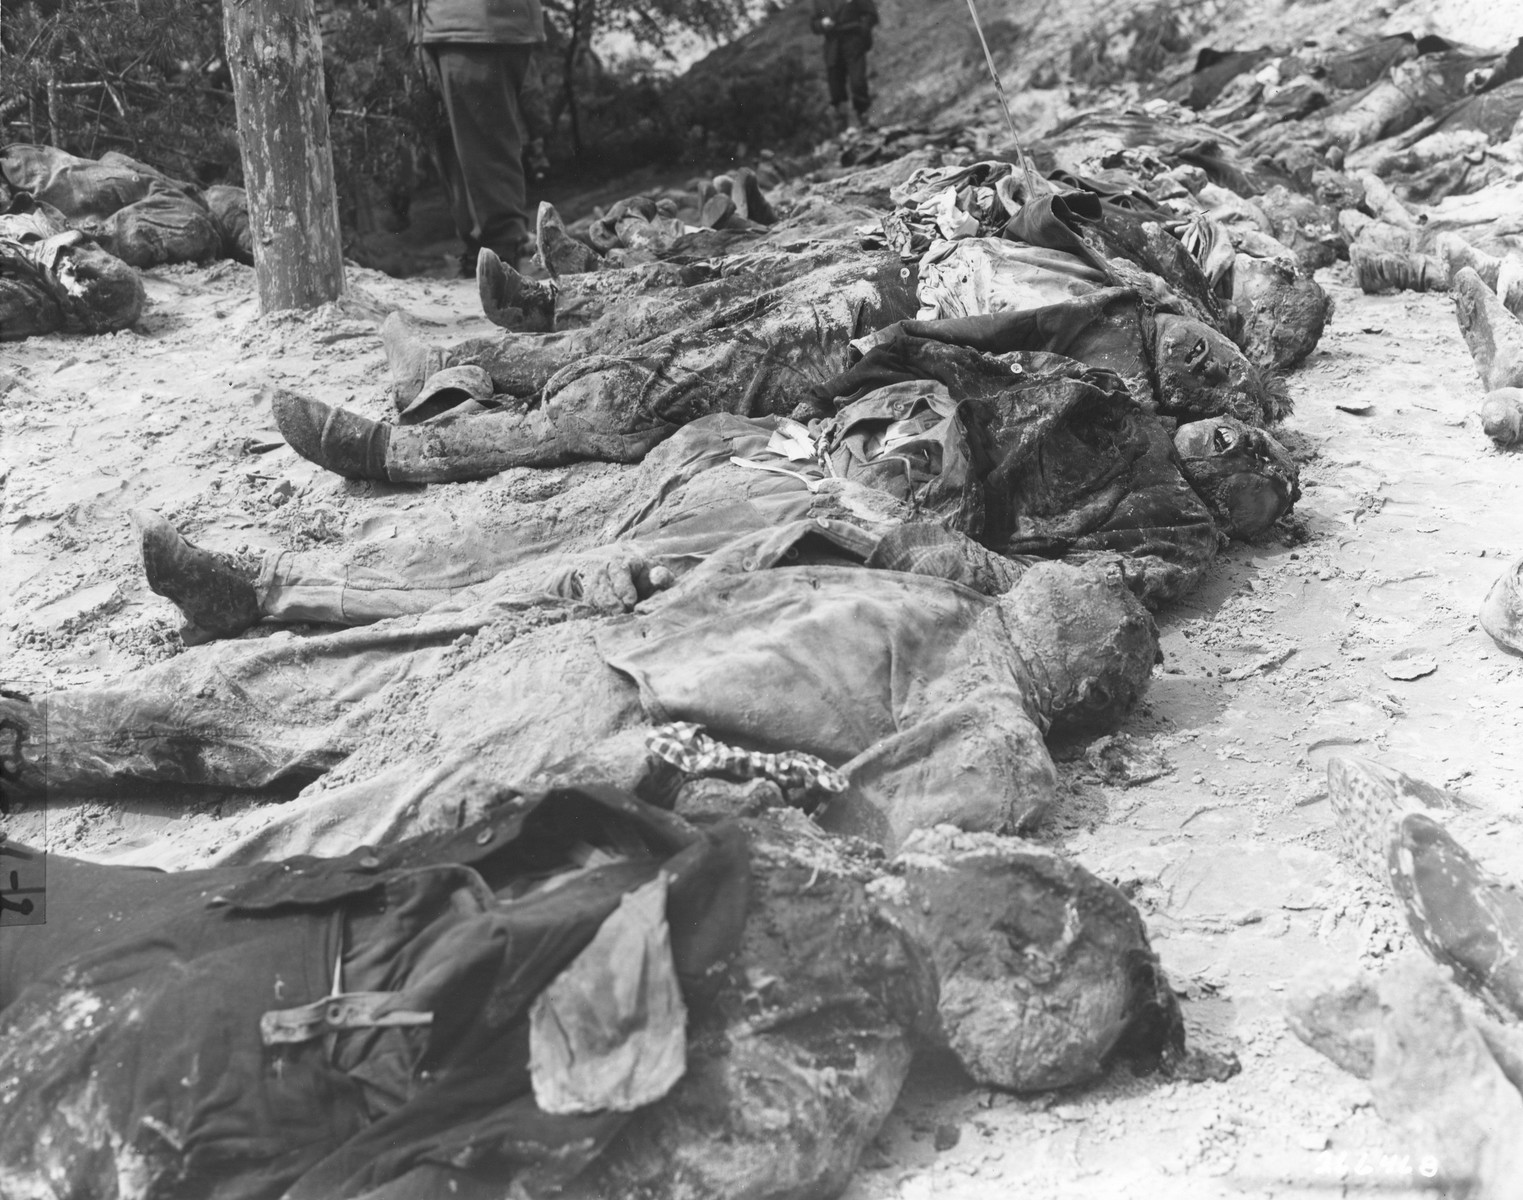 "The bodies of political prisoners exhumed from a mass grave on Wenzelnberg near Solingen-Ohligs.  The victims, most of whom were taken from Luettringhausen prison, were shot and buried by the Gestapo following orders to eliminate all Reich enemies just before the end of the war.  The original caption reads ""Bodies of German political prisoners who were shot by Nazis and thrown into a common grave.  Bodies were exhumed by German civilians by order of troops of the 94th Division, and will be given decent reburial in Ohligs in a public place as a permanent reminder to the German people of the atrocities committed by their Nazi leaders."""